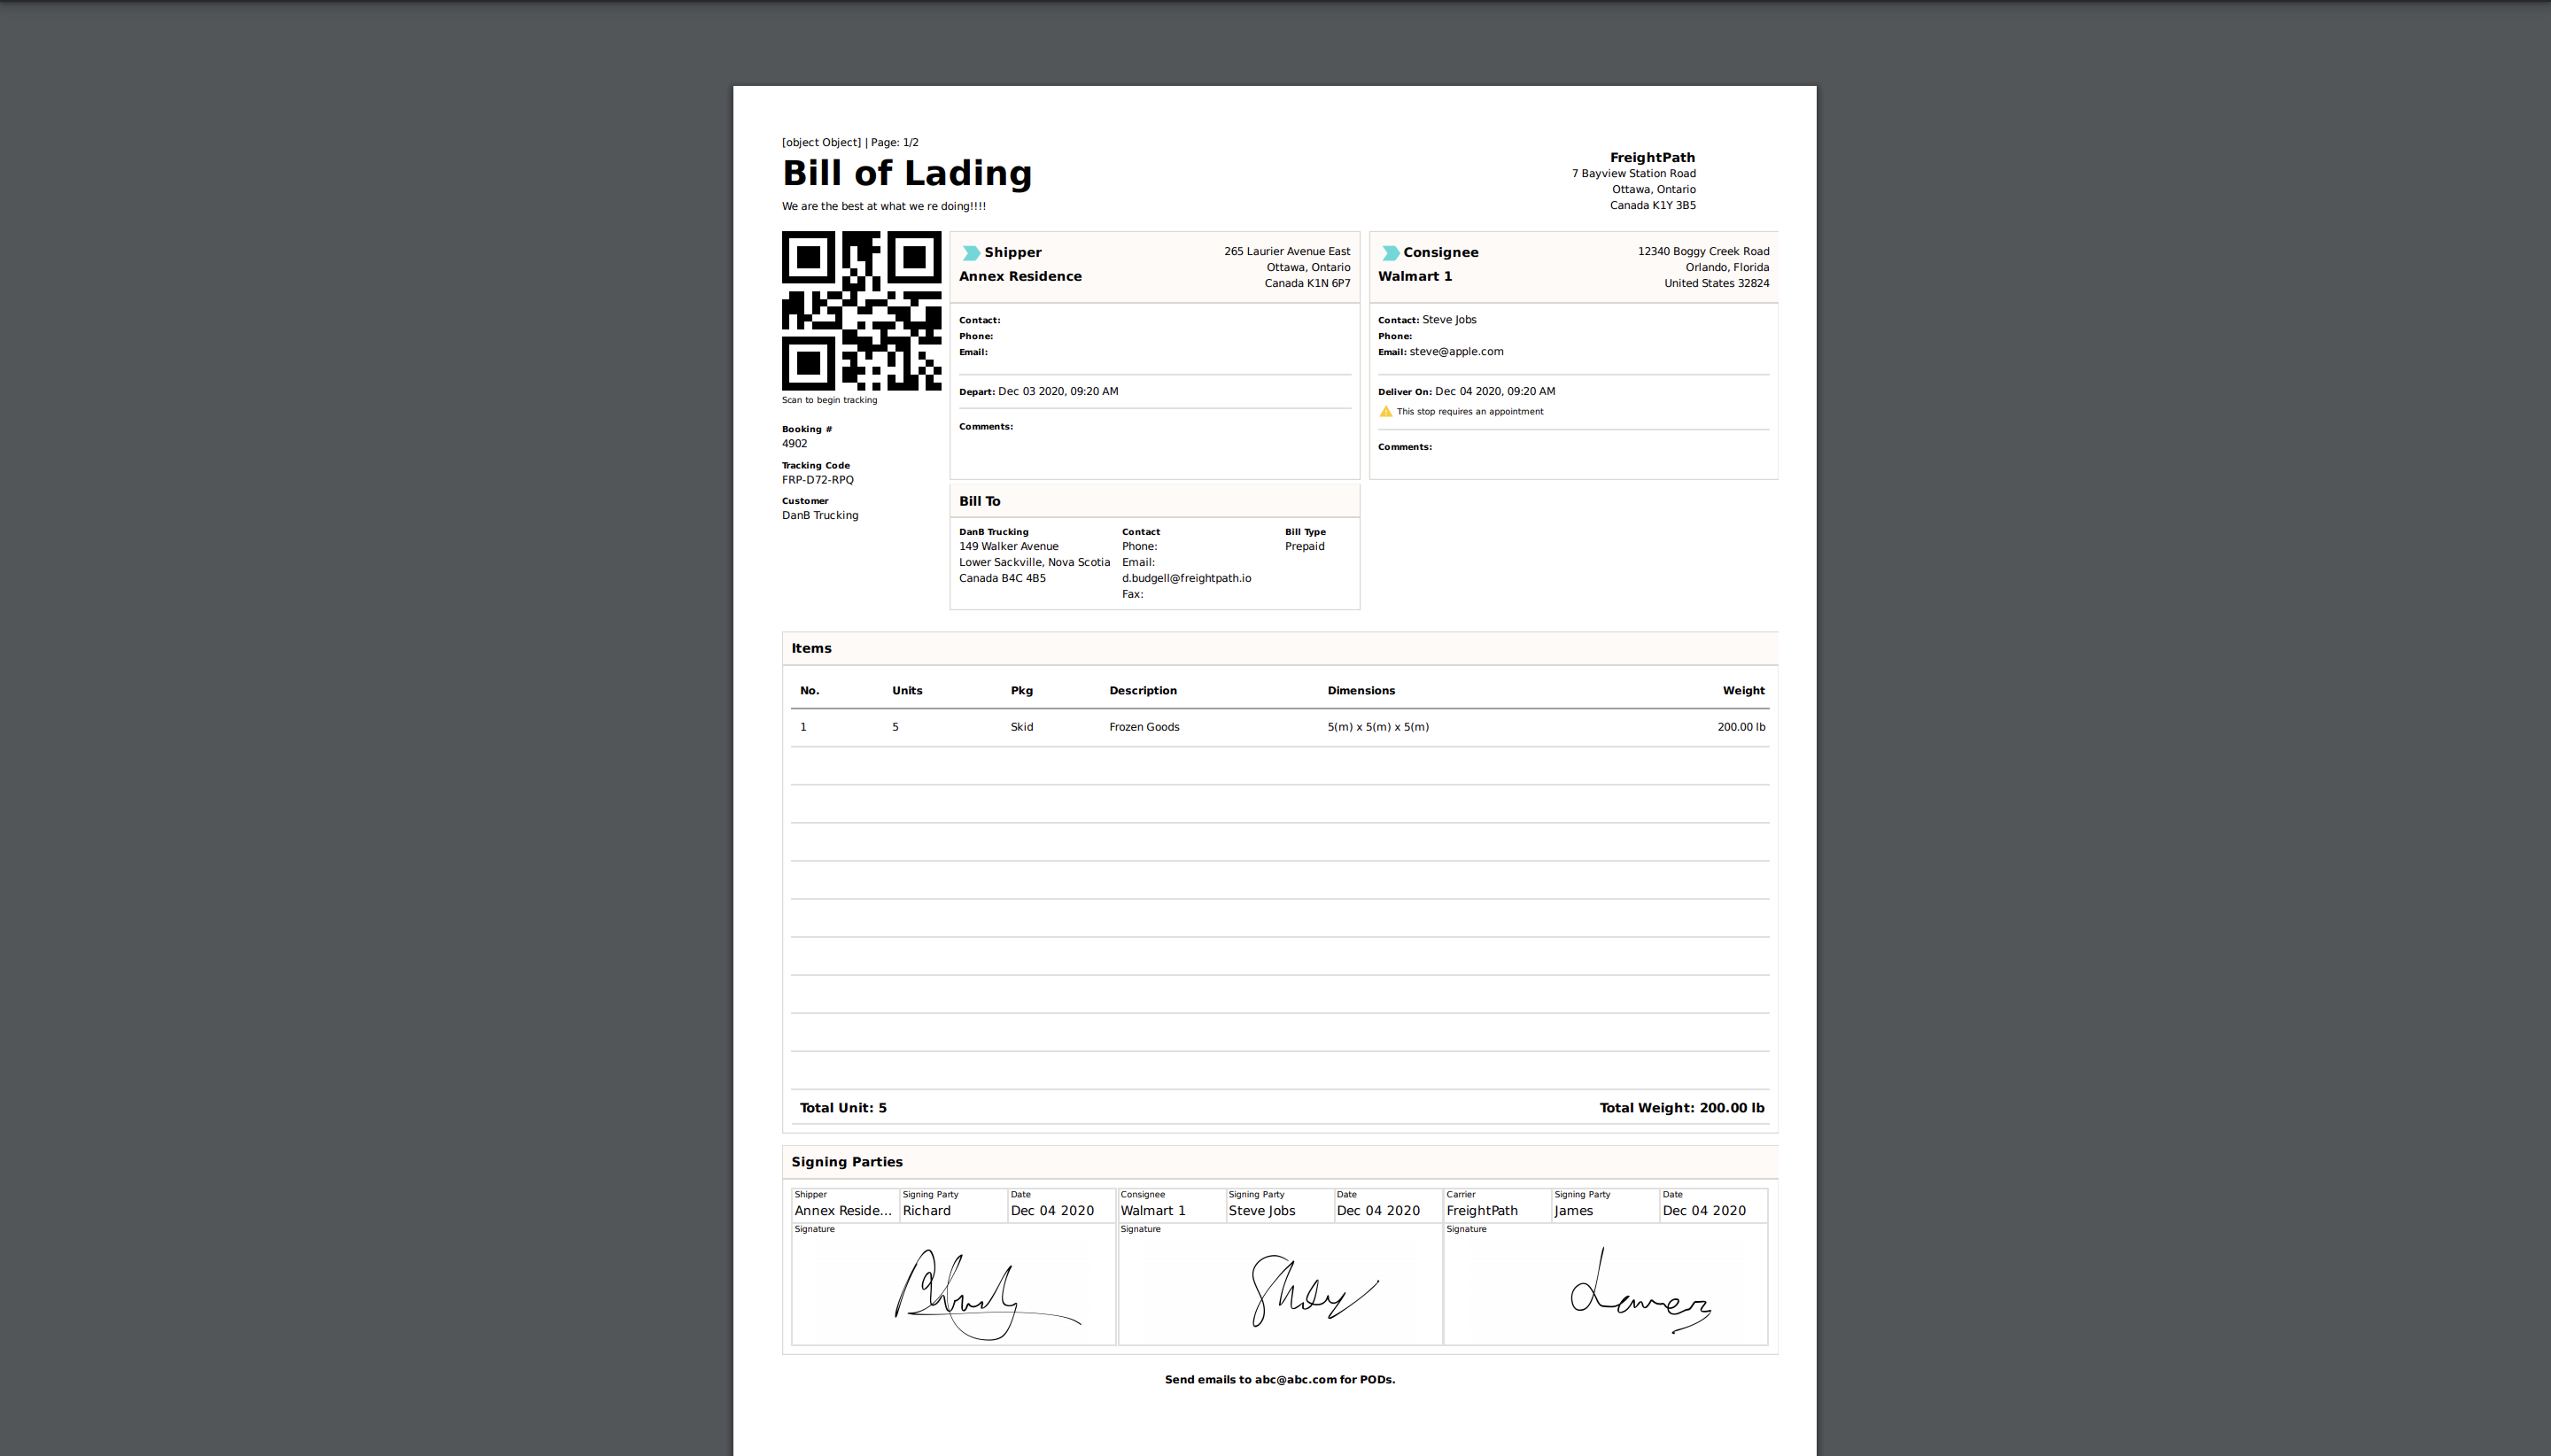 Understanding the Bill of Lading/Proof of Delivery